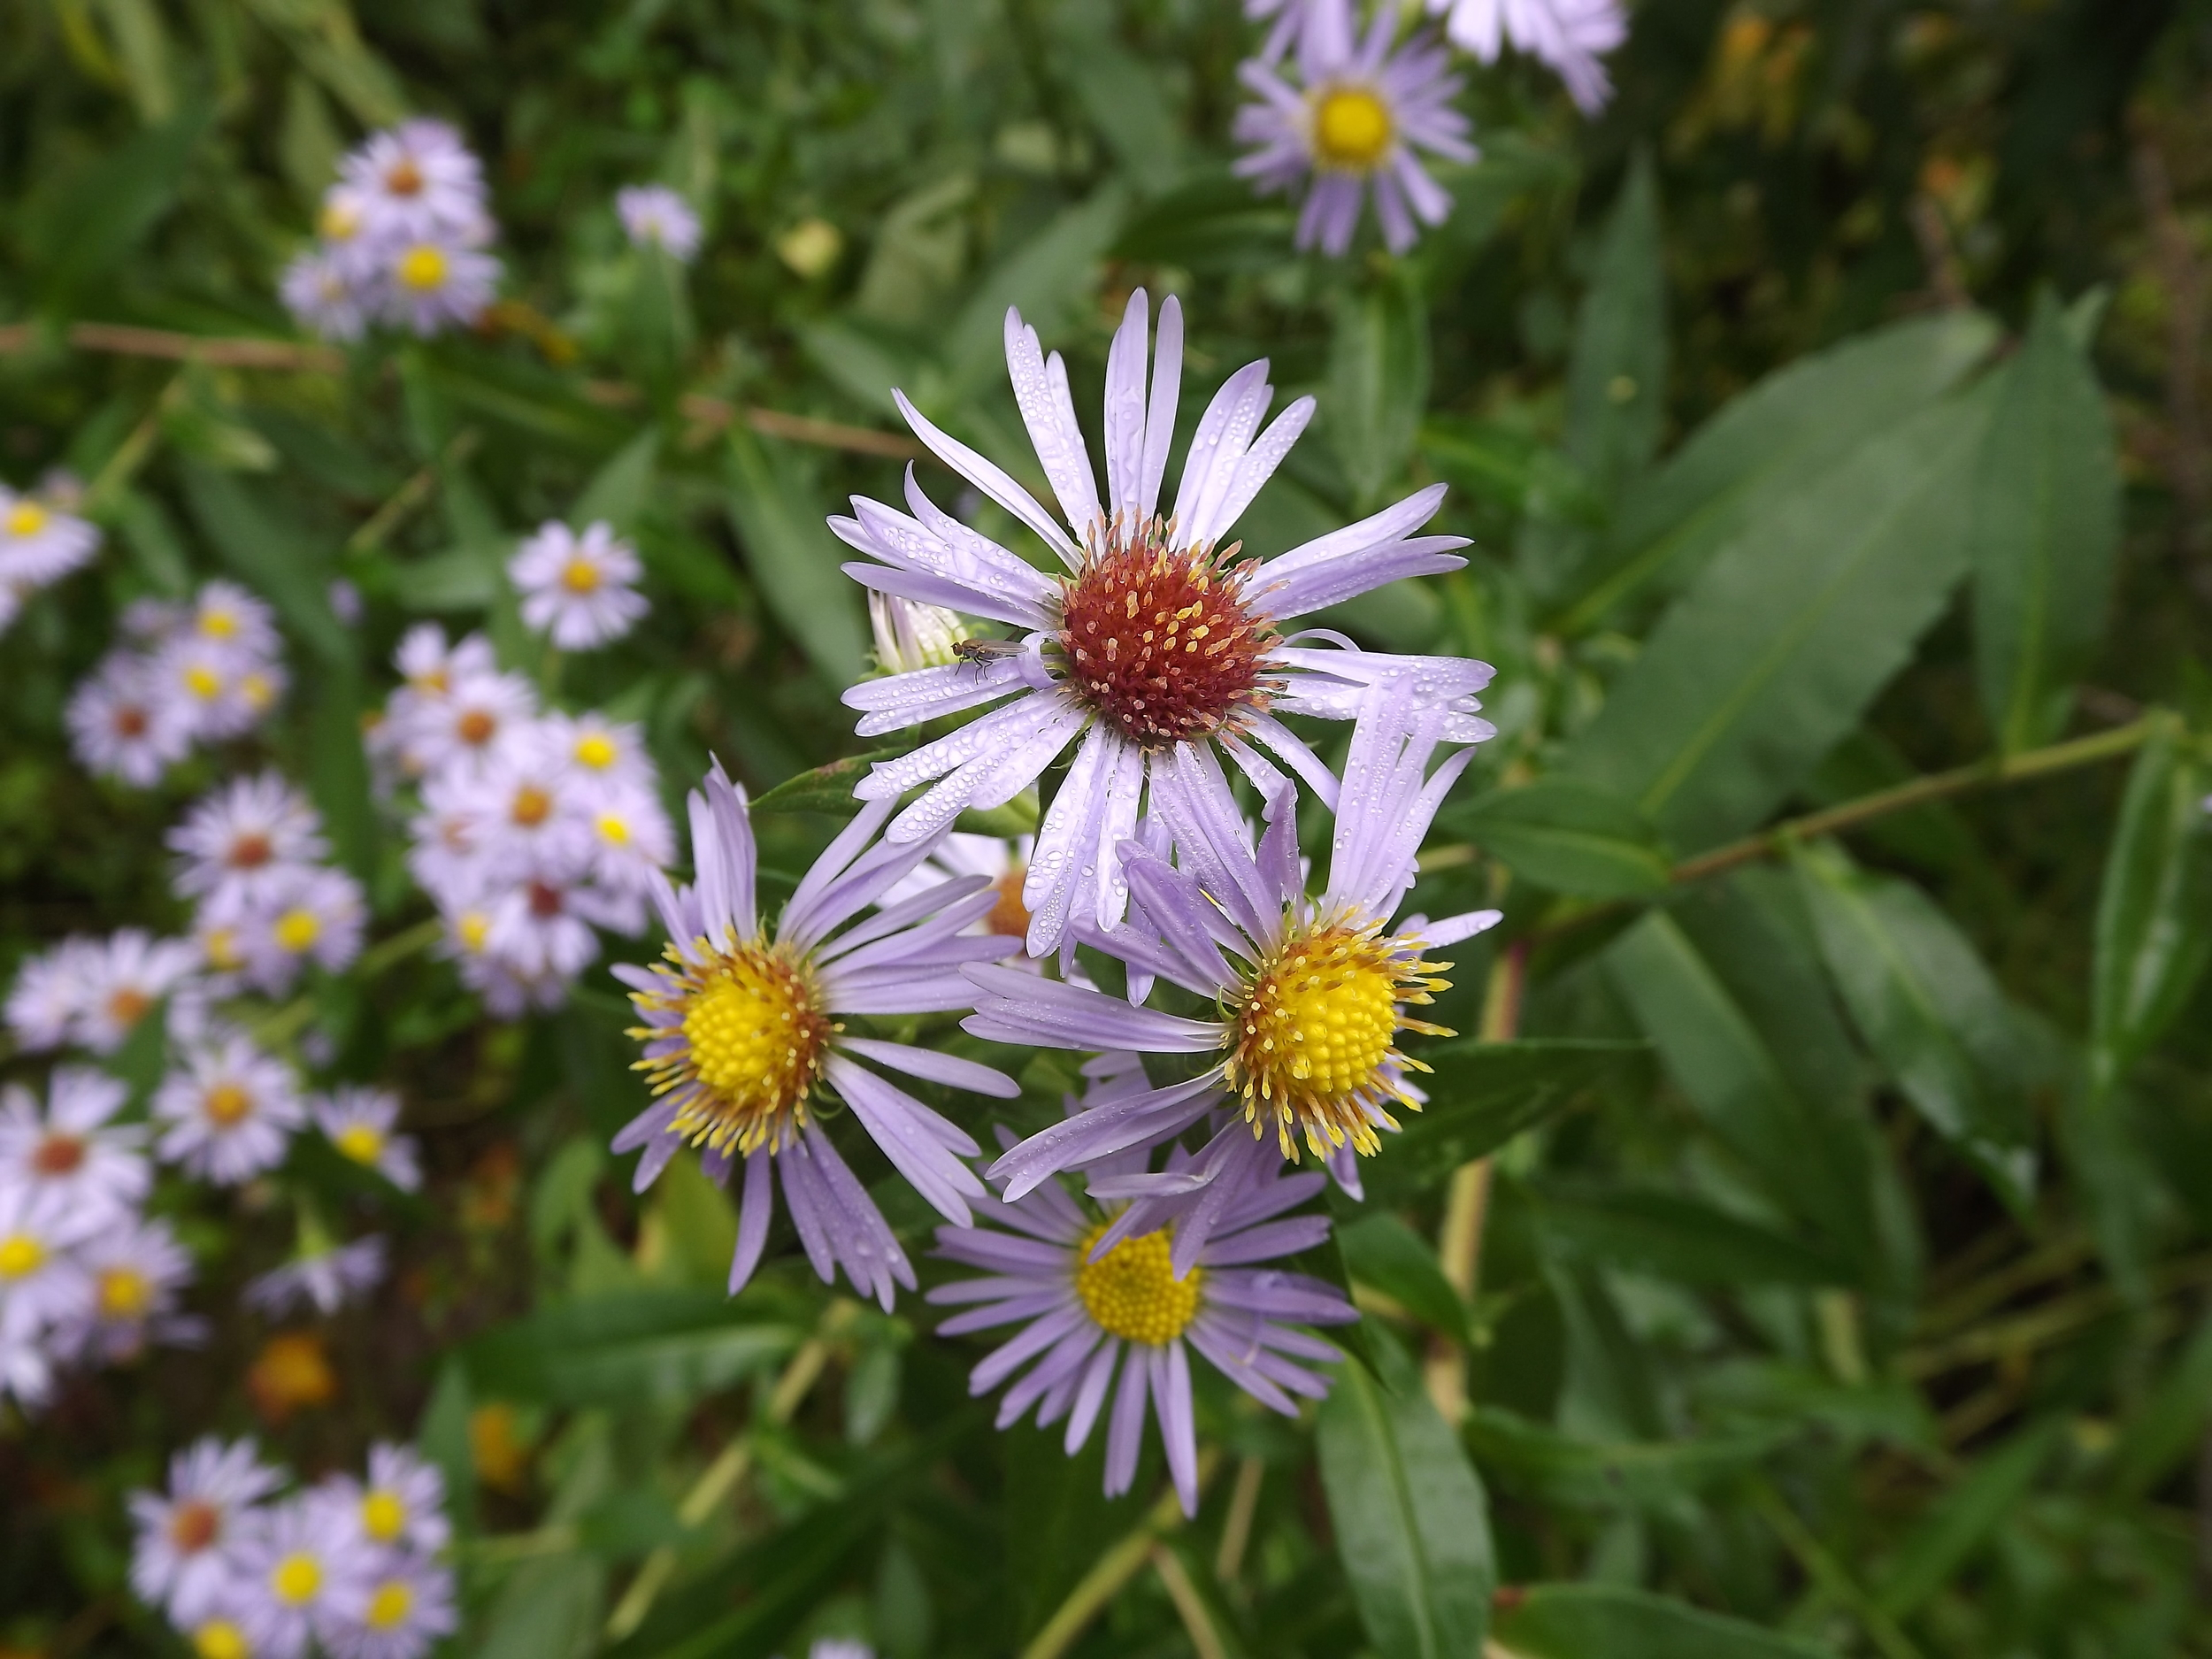 New England Aster ( Symphyotrichum novae-angliae ) - New England is definitely one of my favorite wildflowers, mostly because its purple blossoms are so beautiful, but also because I seem to see it everywhere.  This specimen is growing right along the stream and looked extremely healthy.